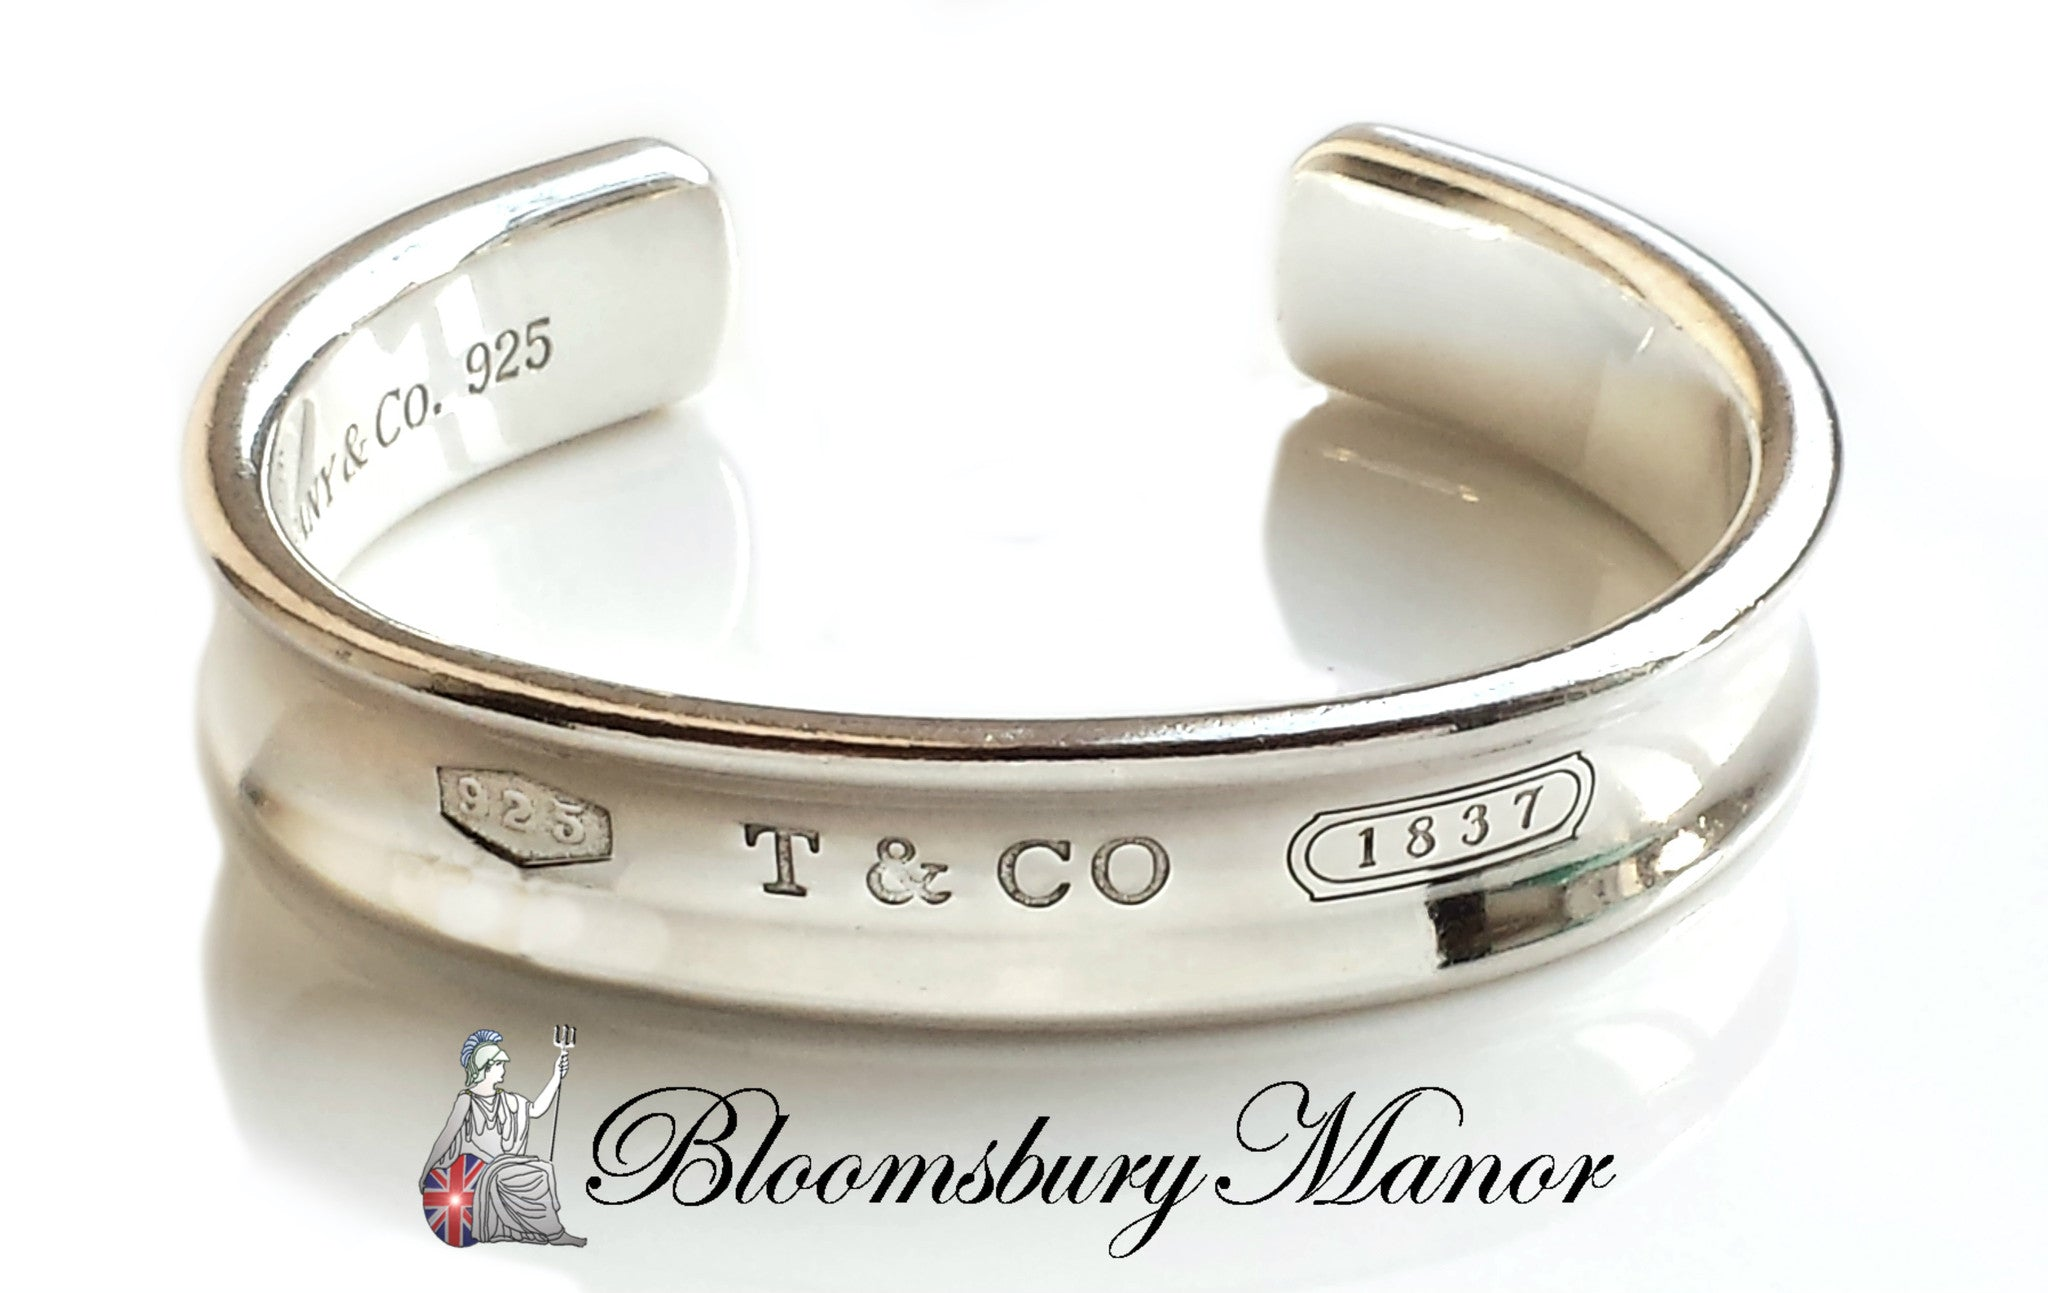 4c6fb8517 Tiffany & Co 1837 Sterling Silver Bangle Bracelet Small + Pouch -  Bloomsbury Manor Ltd